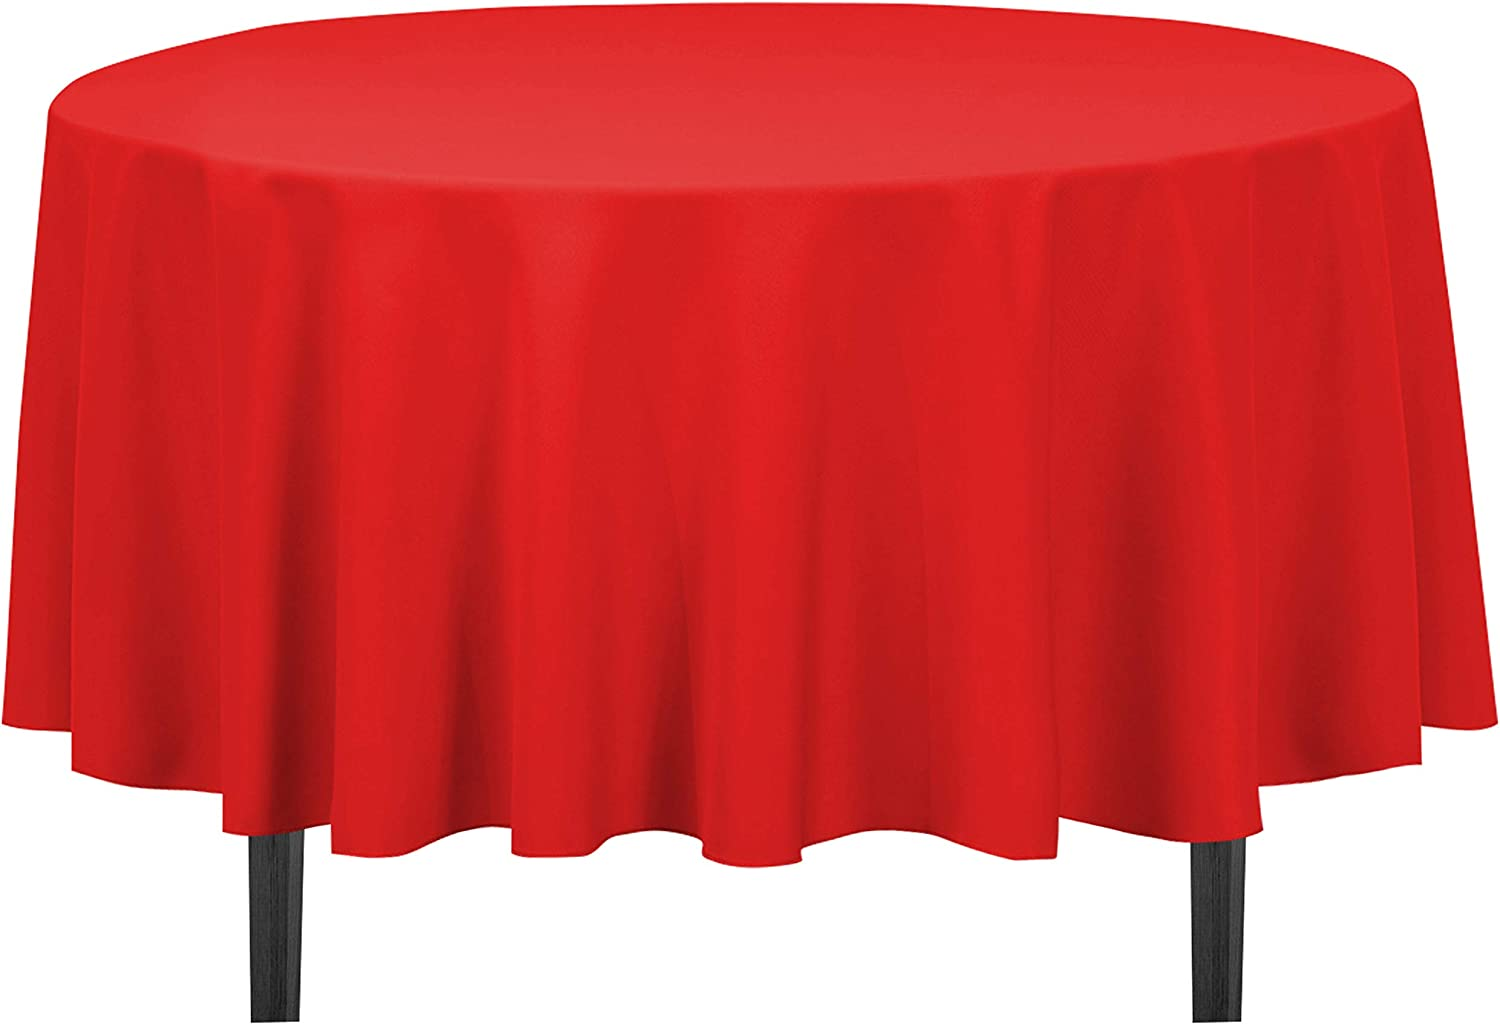 Red tablecloth 160 x 130 cm